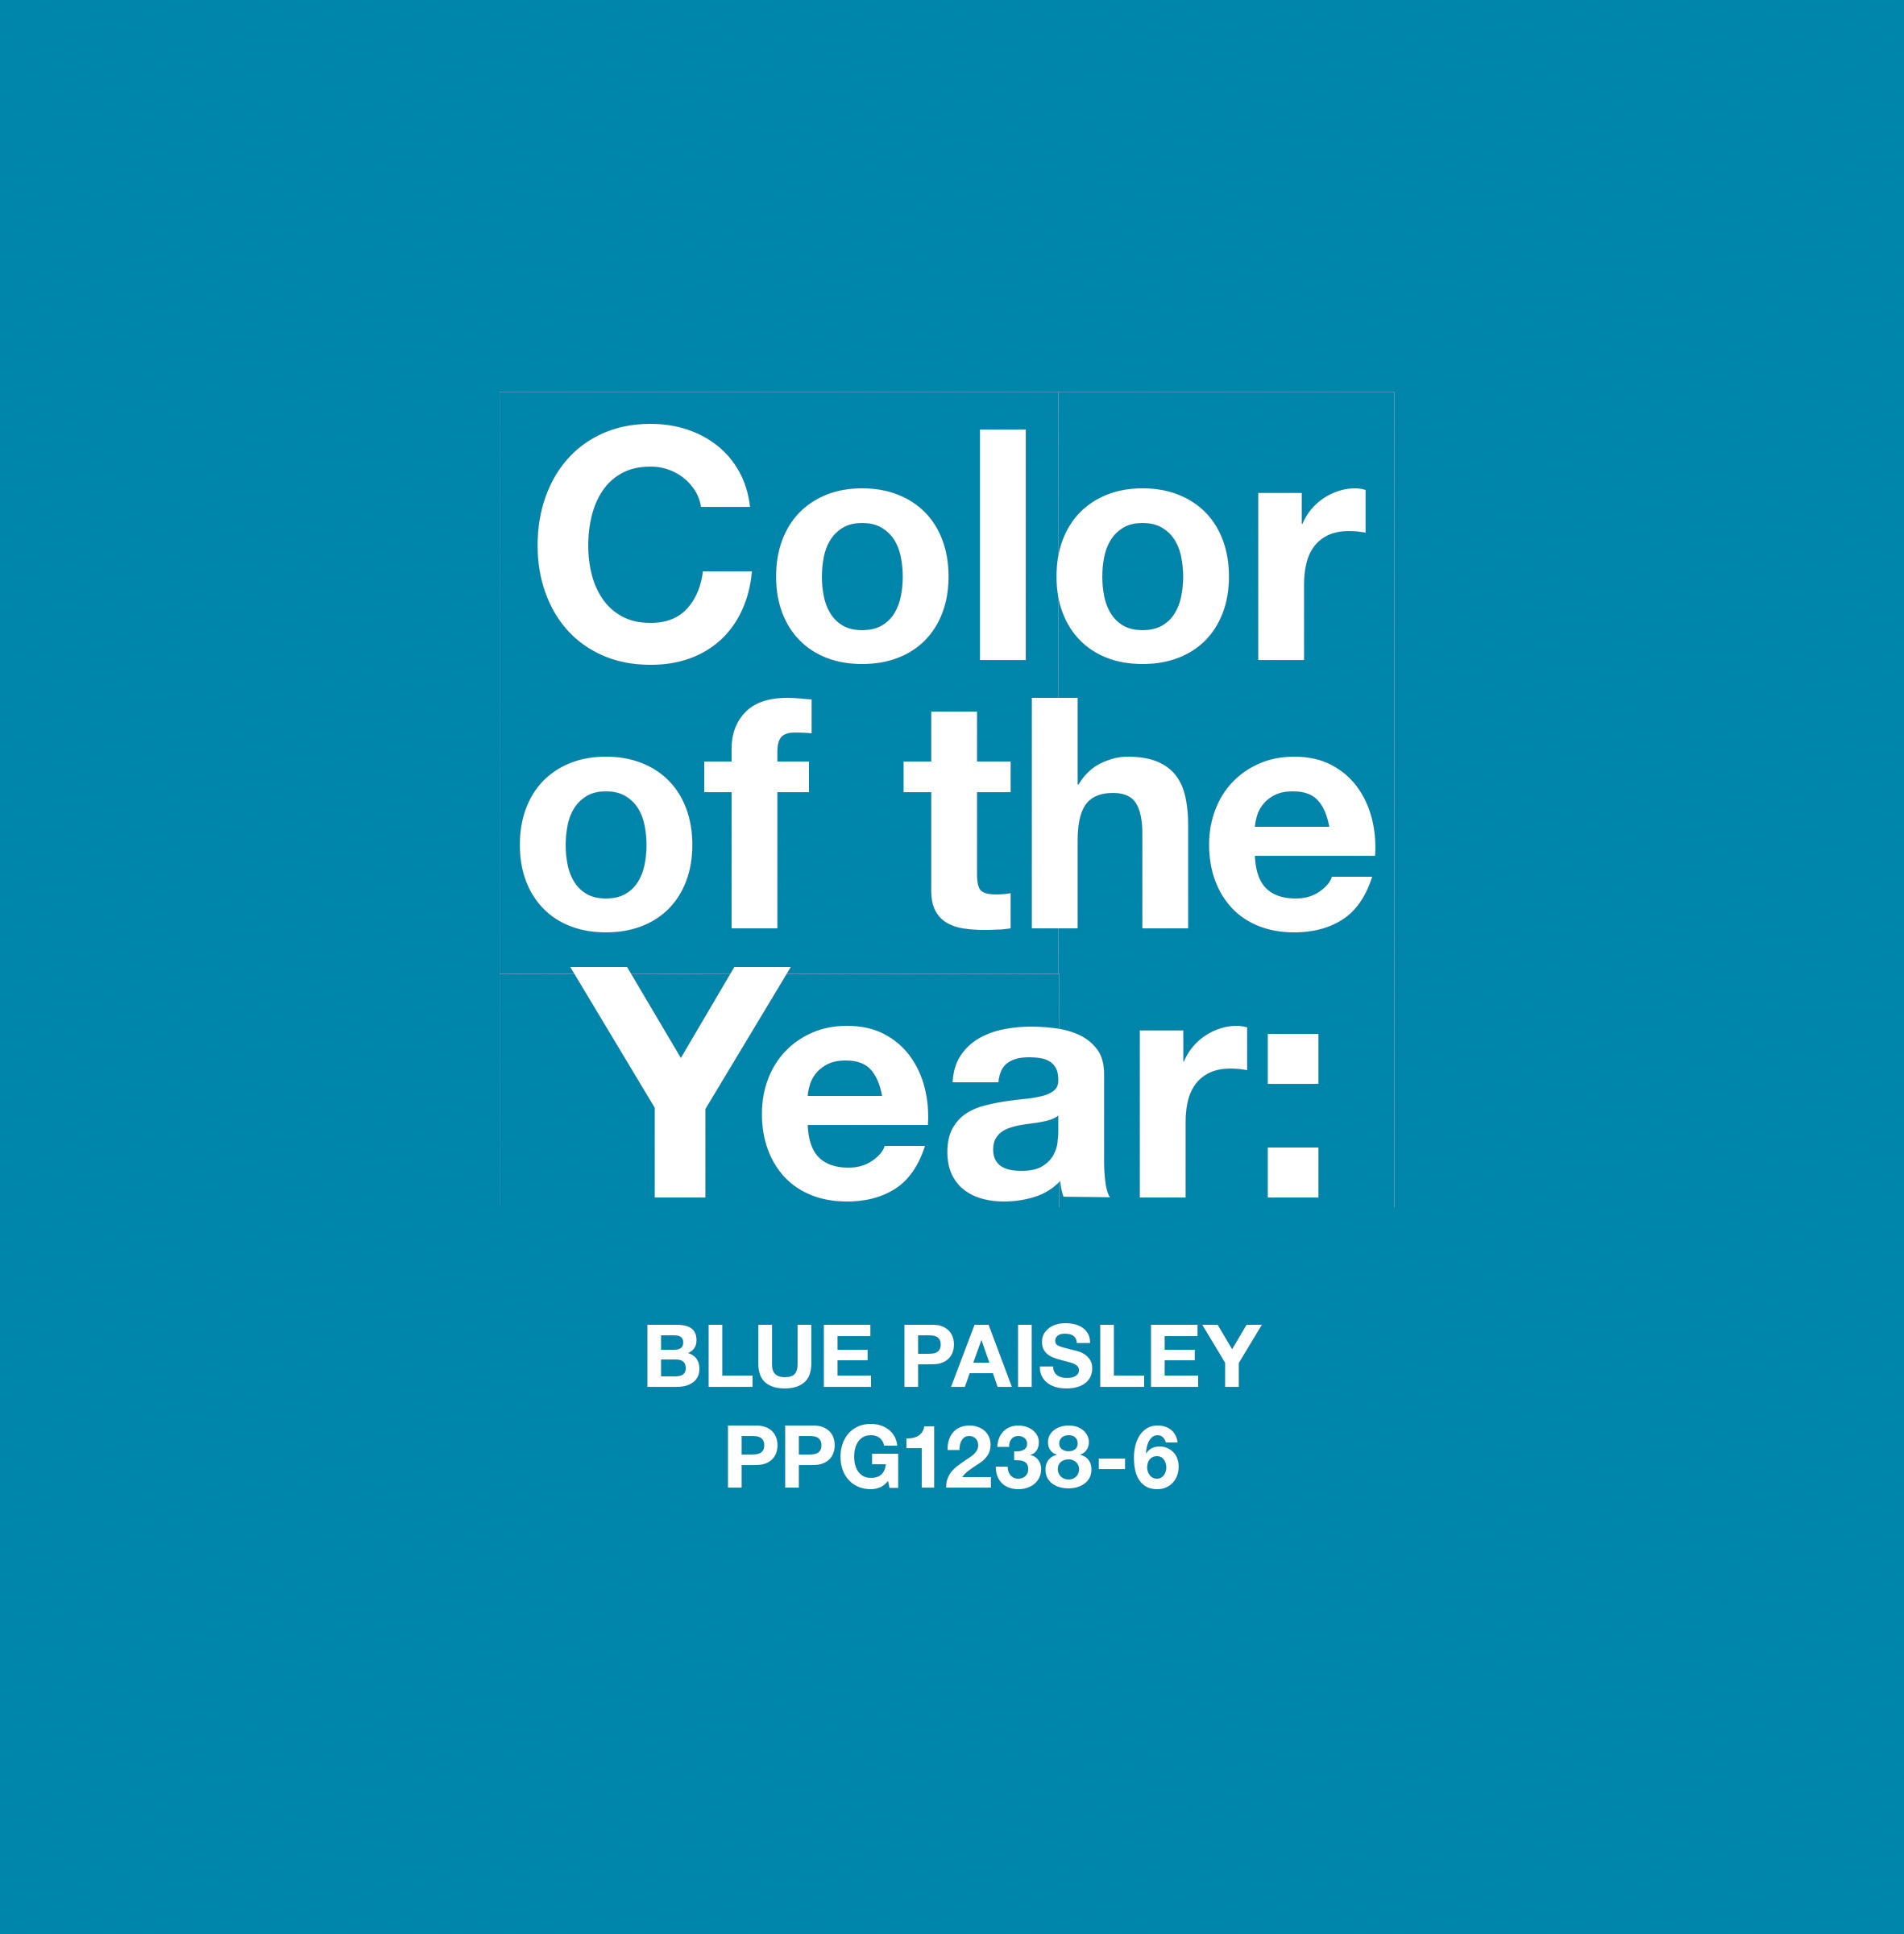 Blue paisley named 2015 color of the year by ppg Paint color of the year